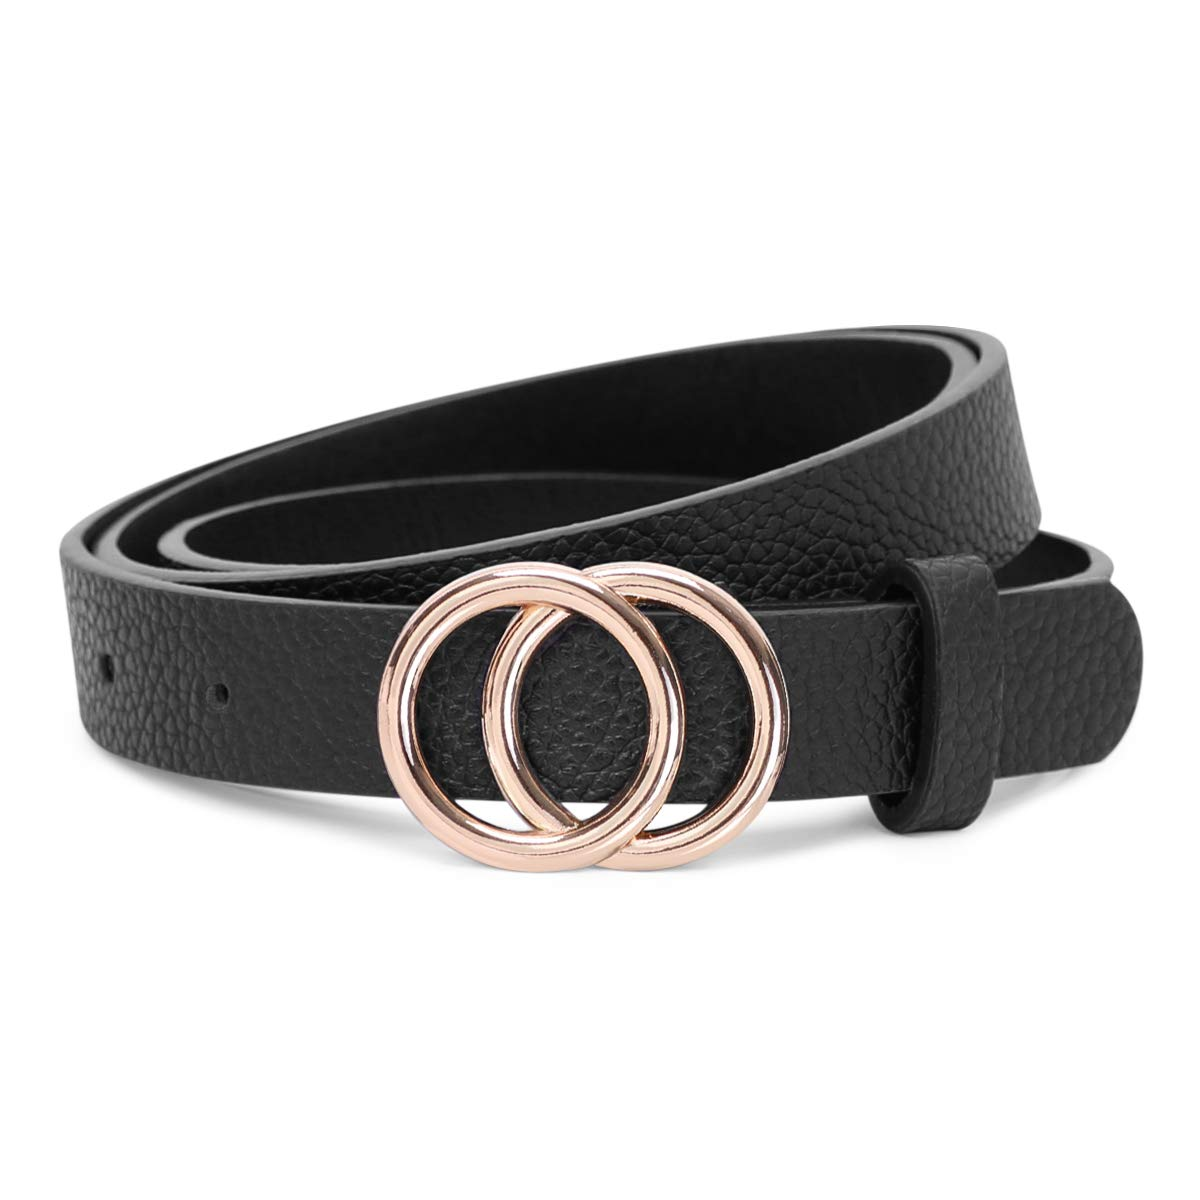 Gorgeous belt. Looks and feels luxurious.